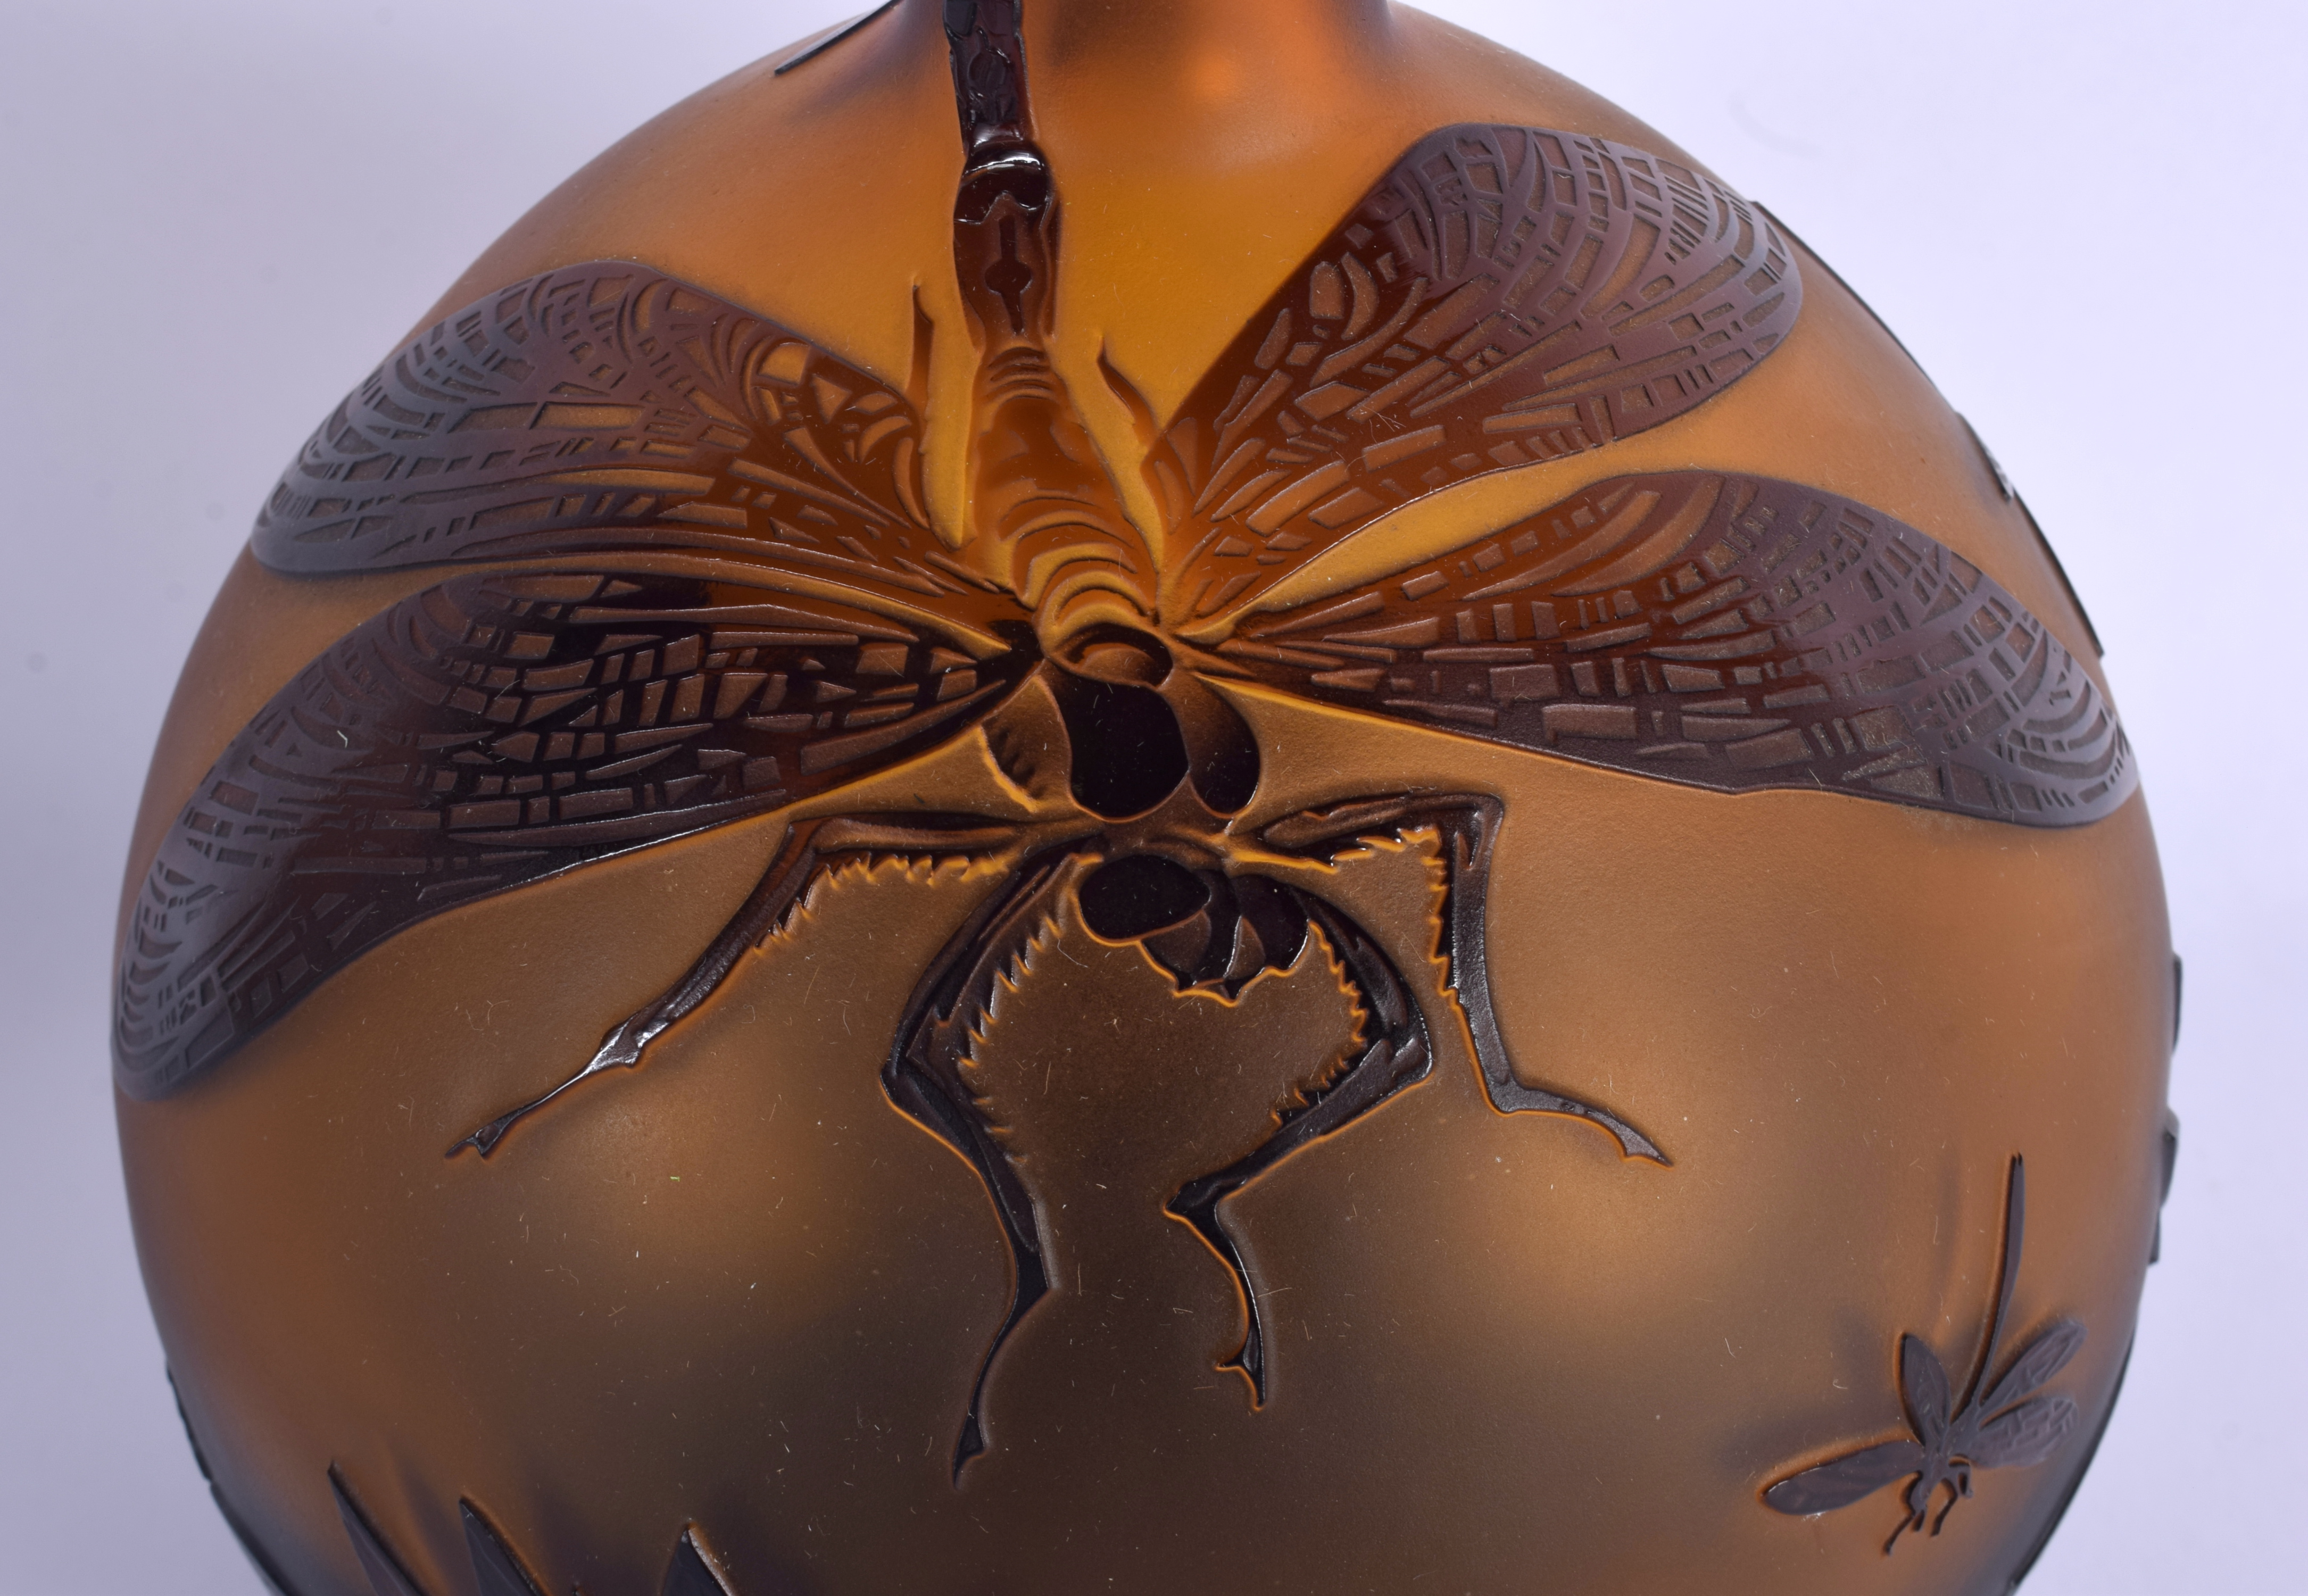 A LARGE ZELENKA CAMEO GLASS VASE decorated with insects. 40 cm high. - Image 2 of 5